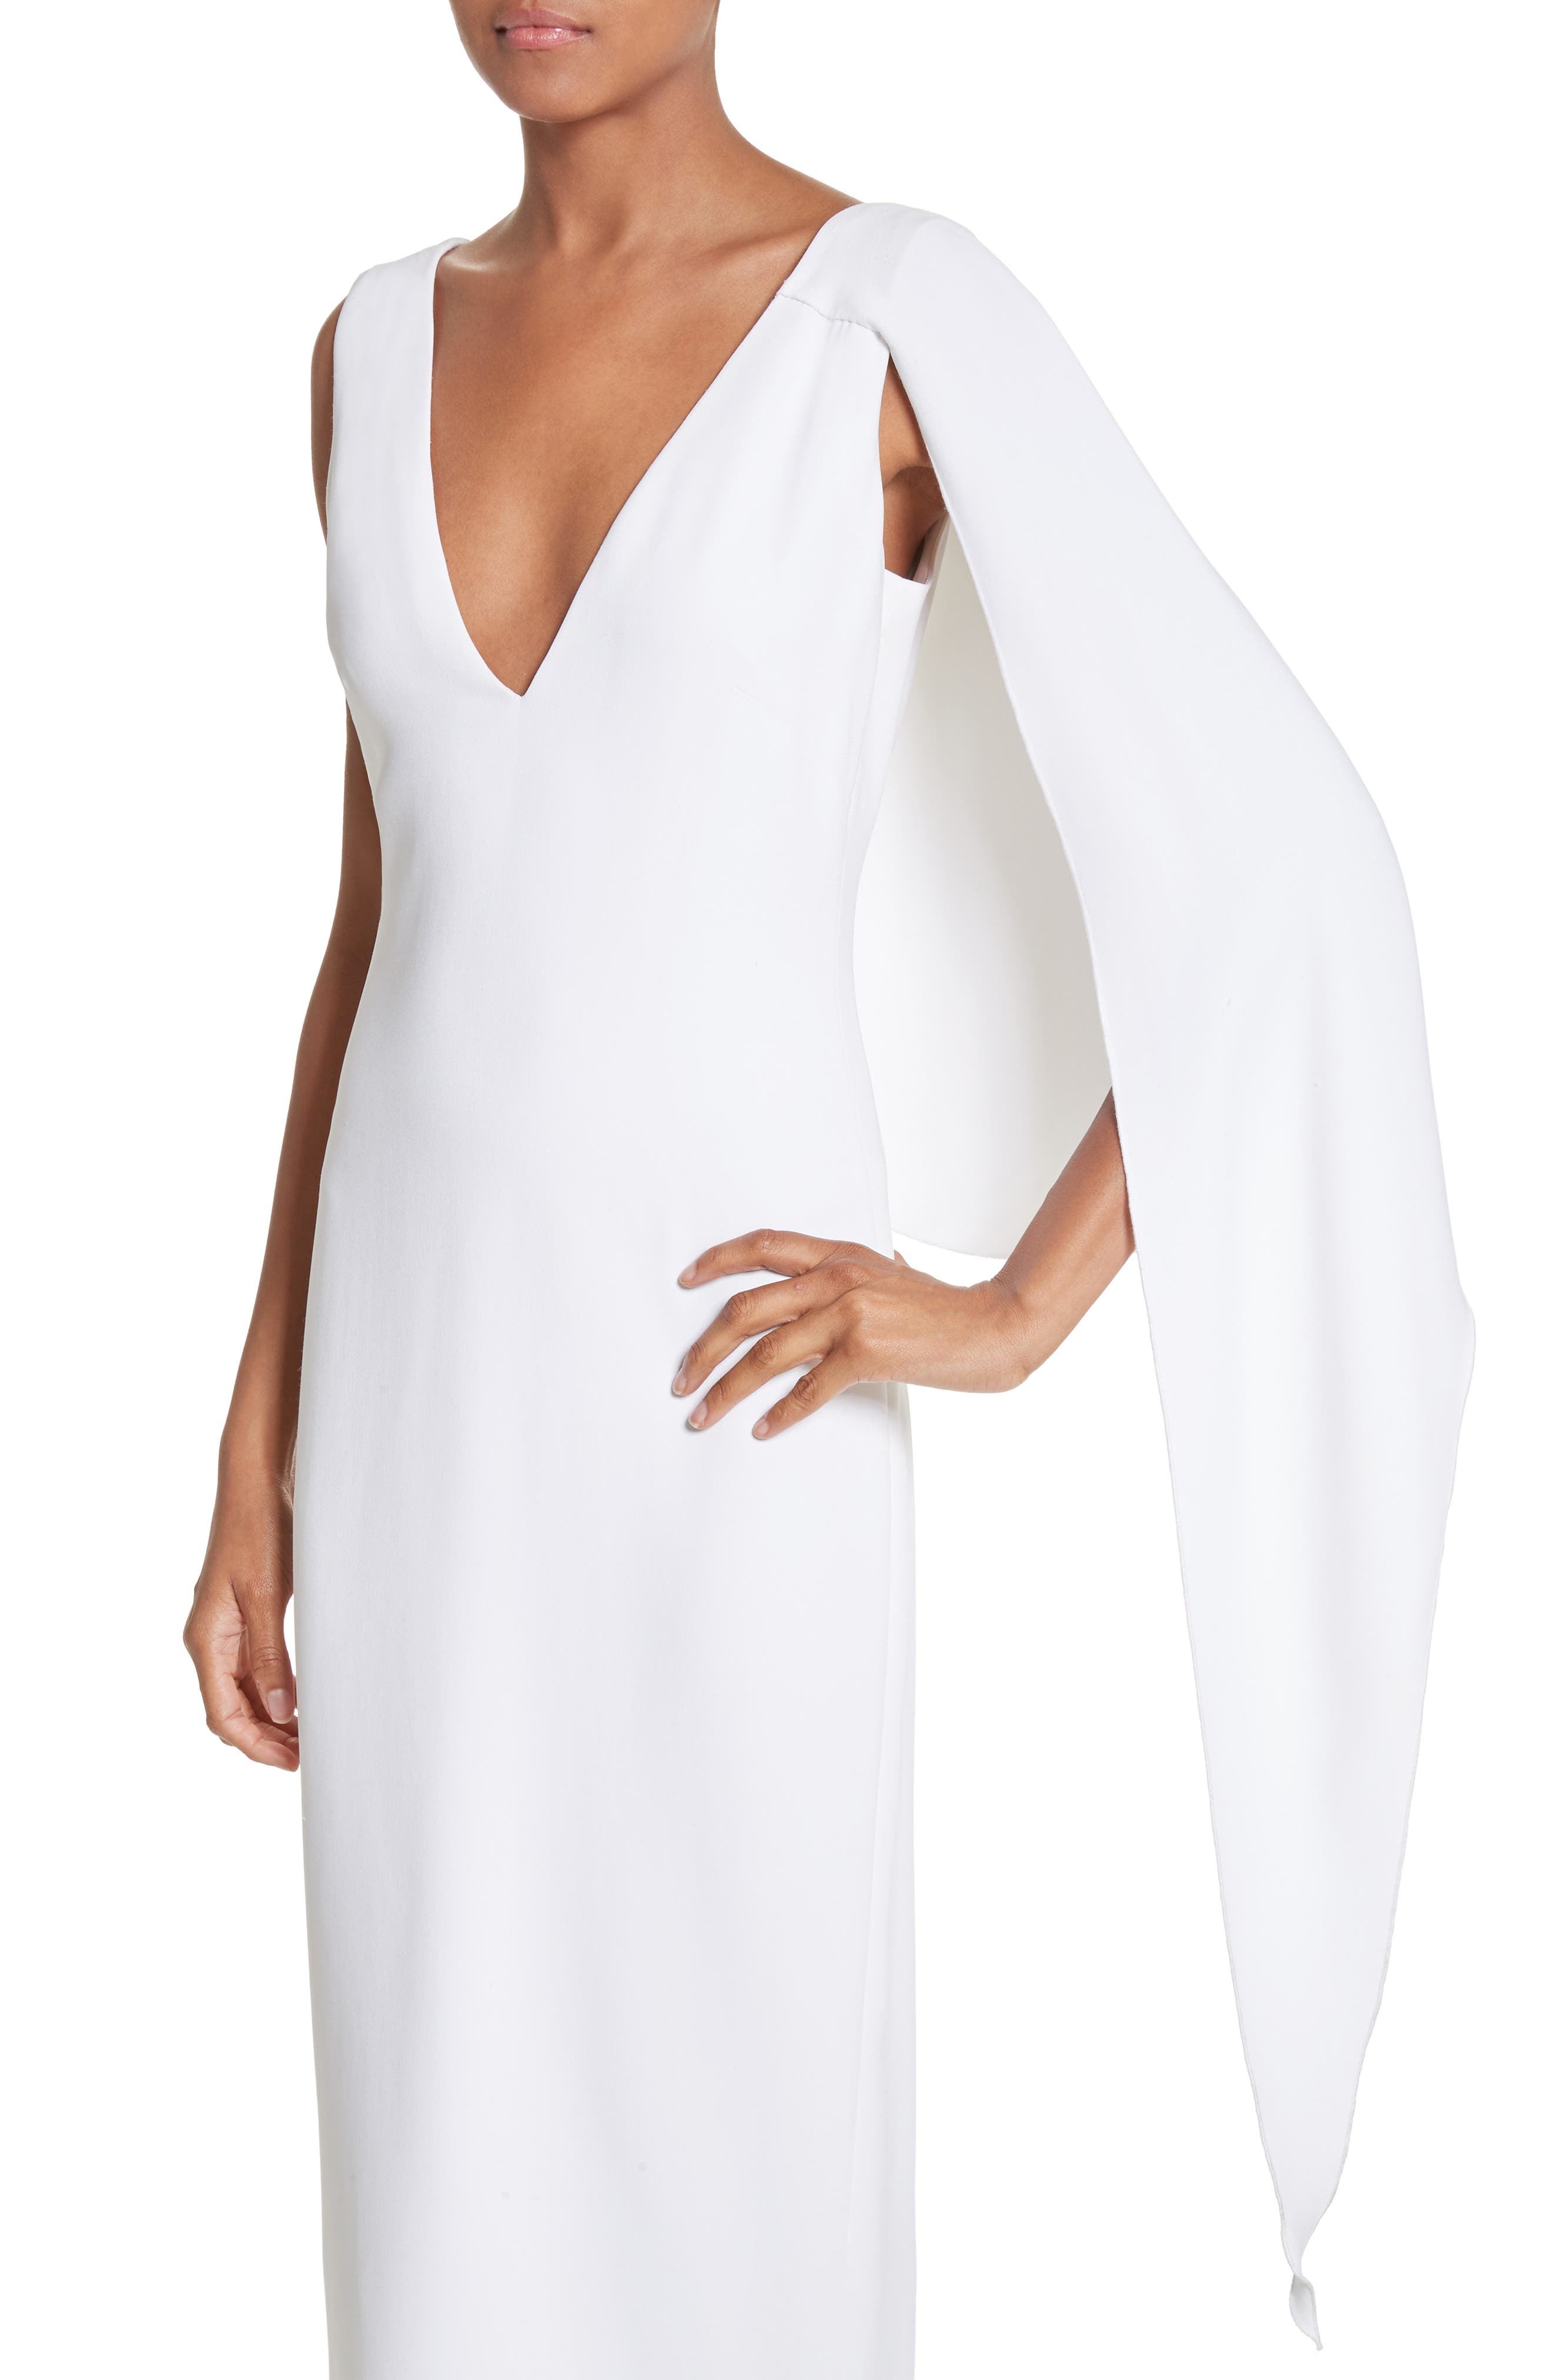 Leta Drape Dress,                             Alternate thumbnail 6, color,                             White